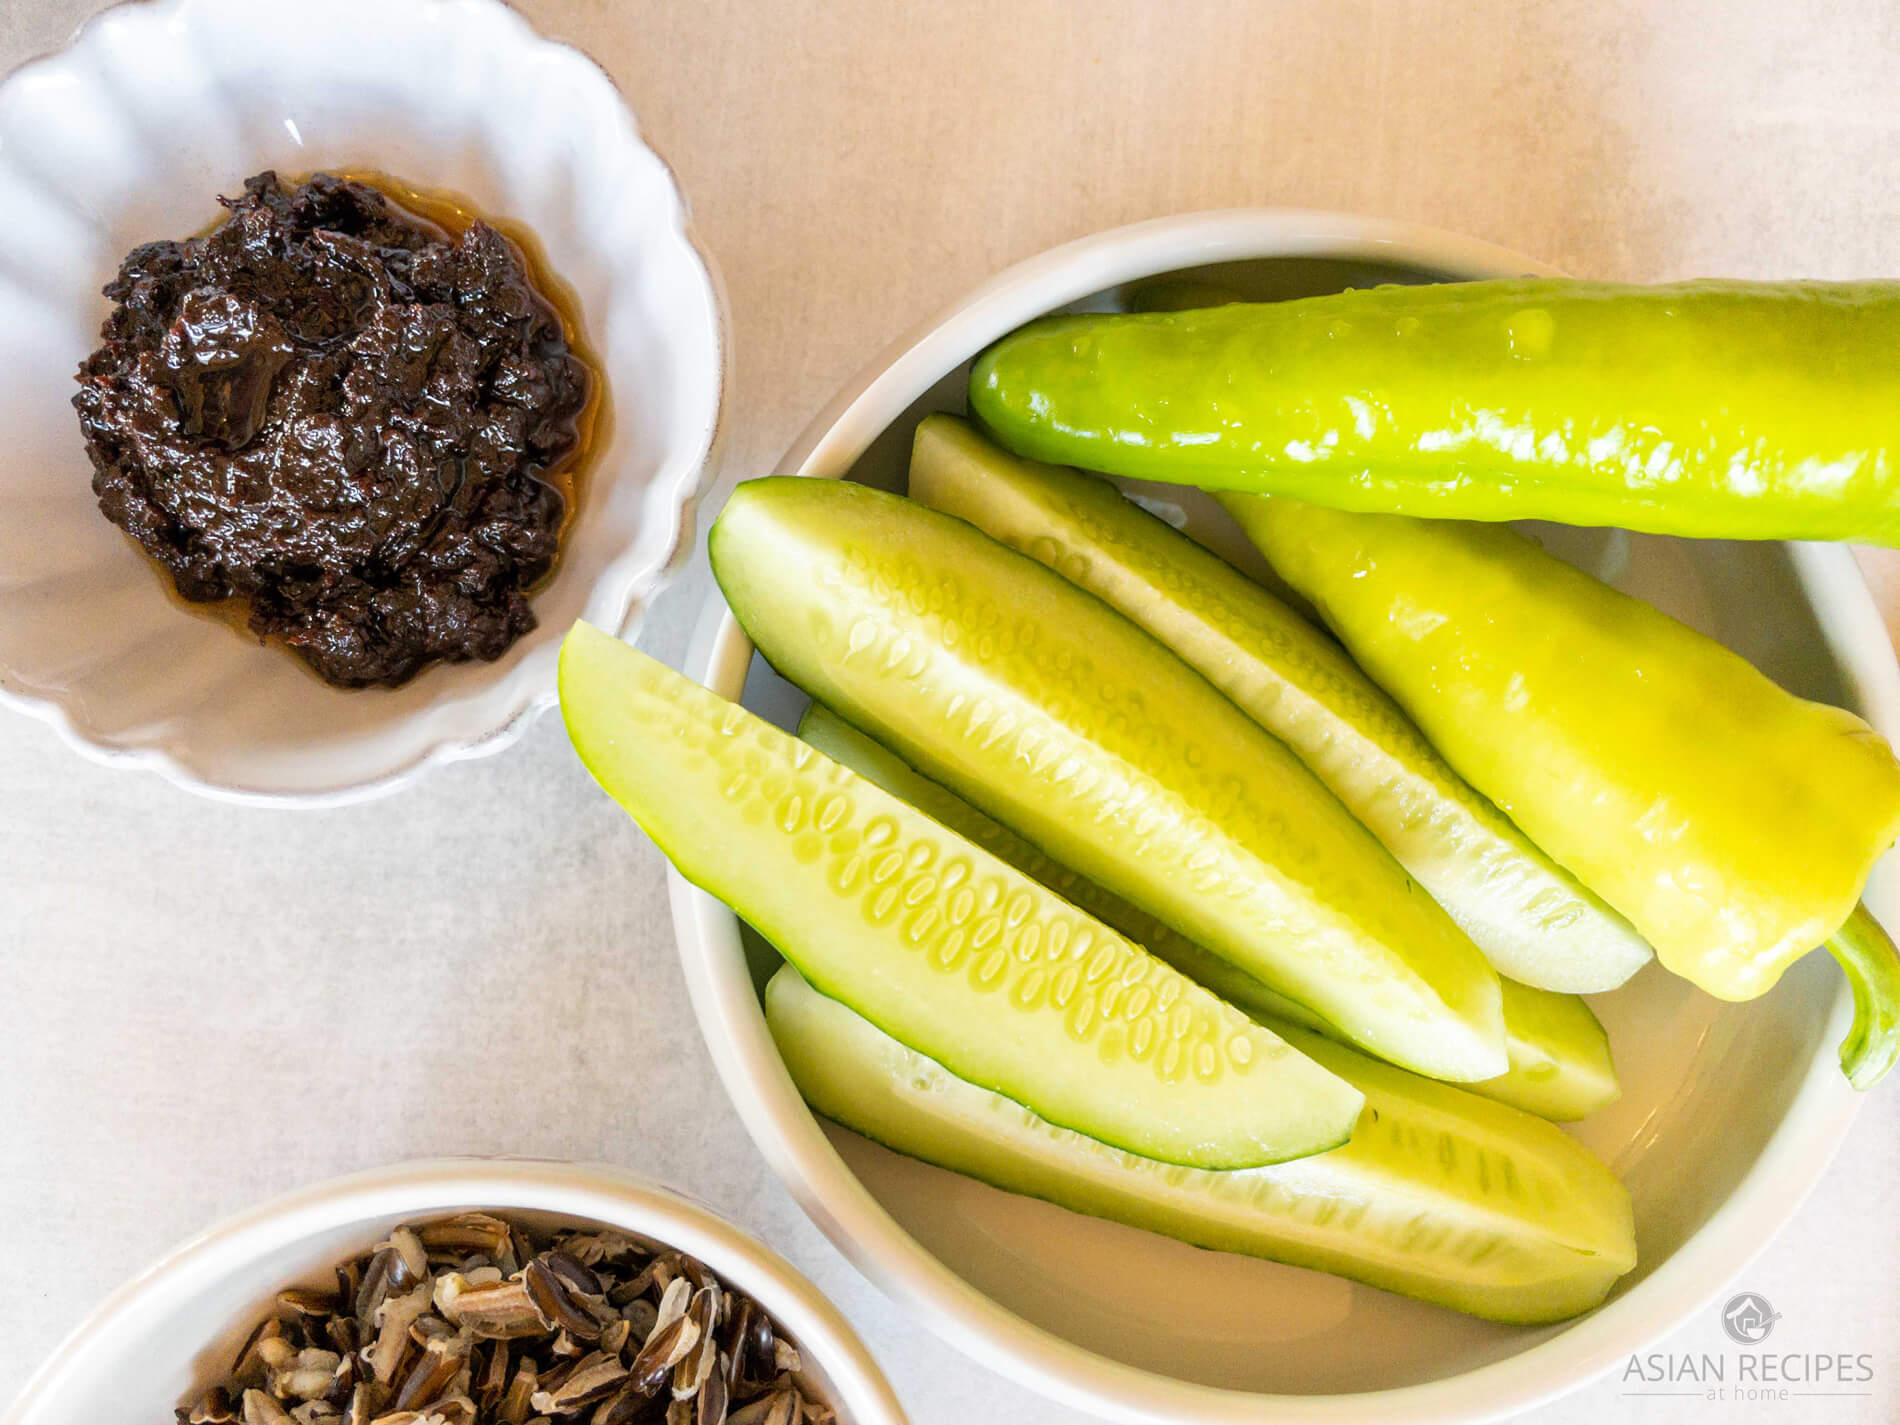 This Korean fermented soybean paste (doenjang) dip is so easy to make and goes great with veggies.